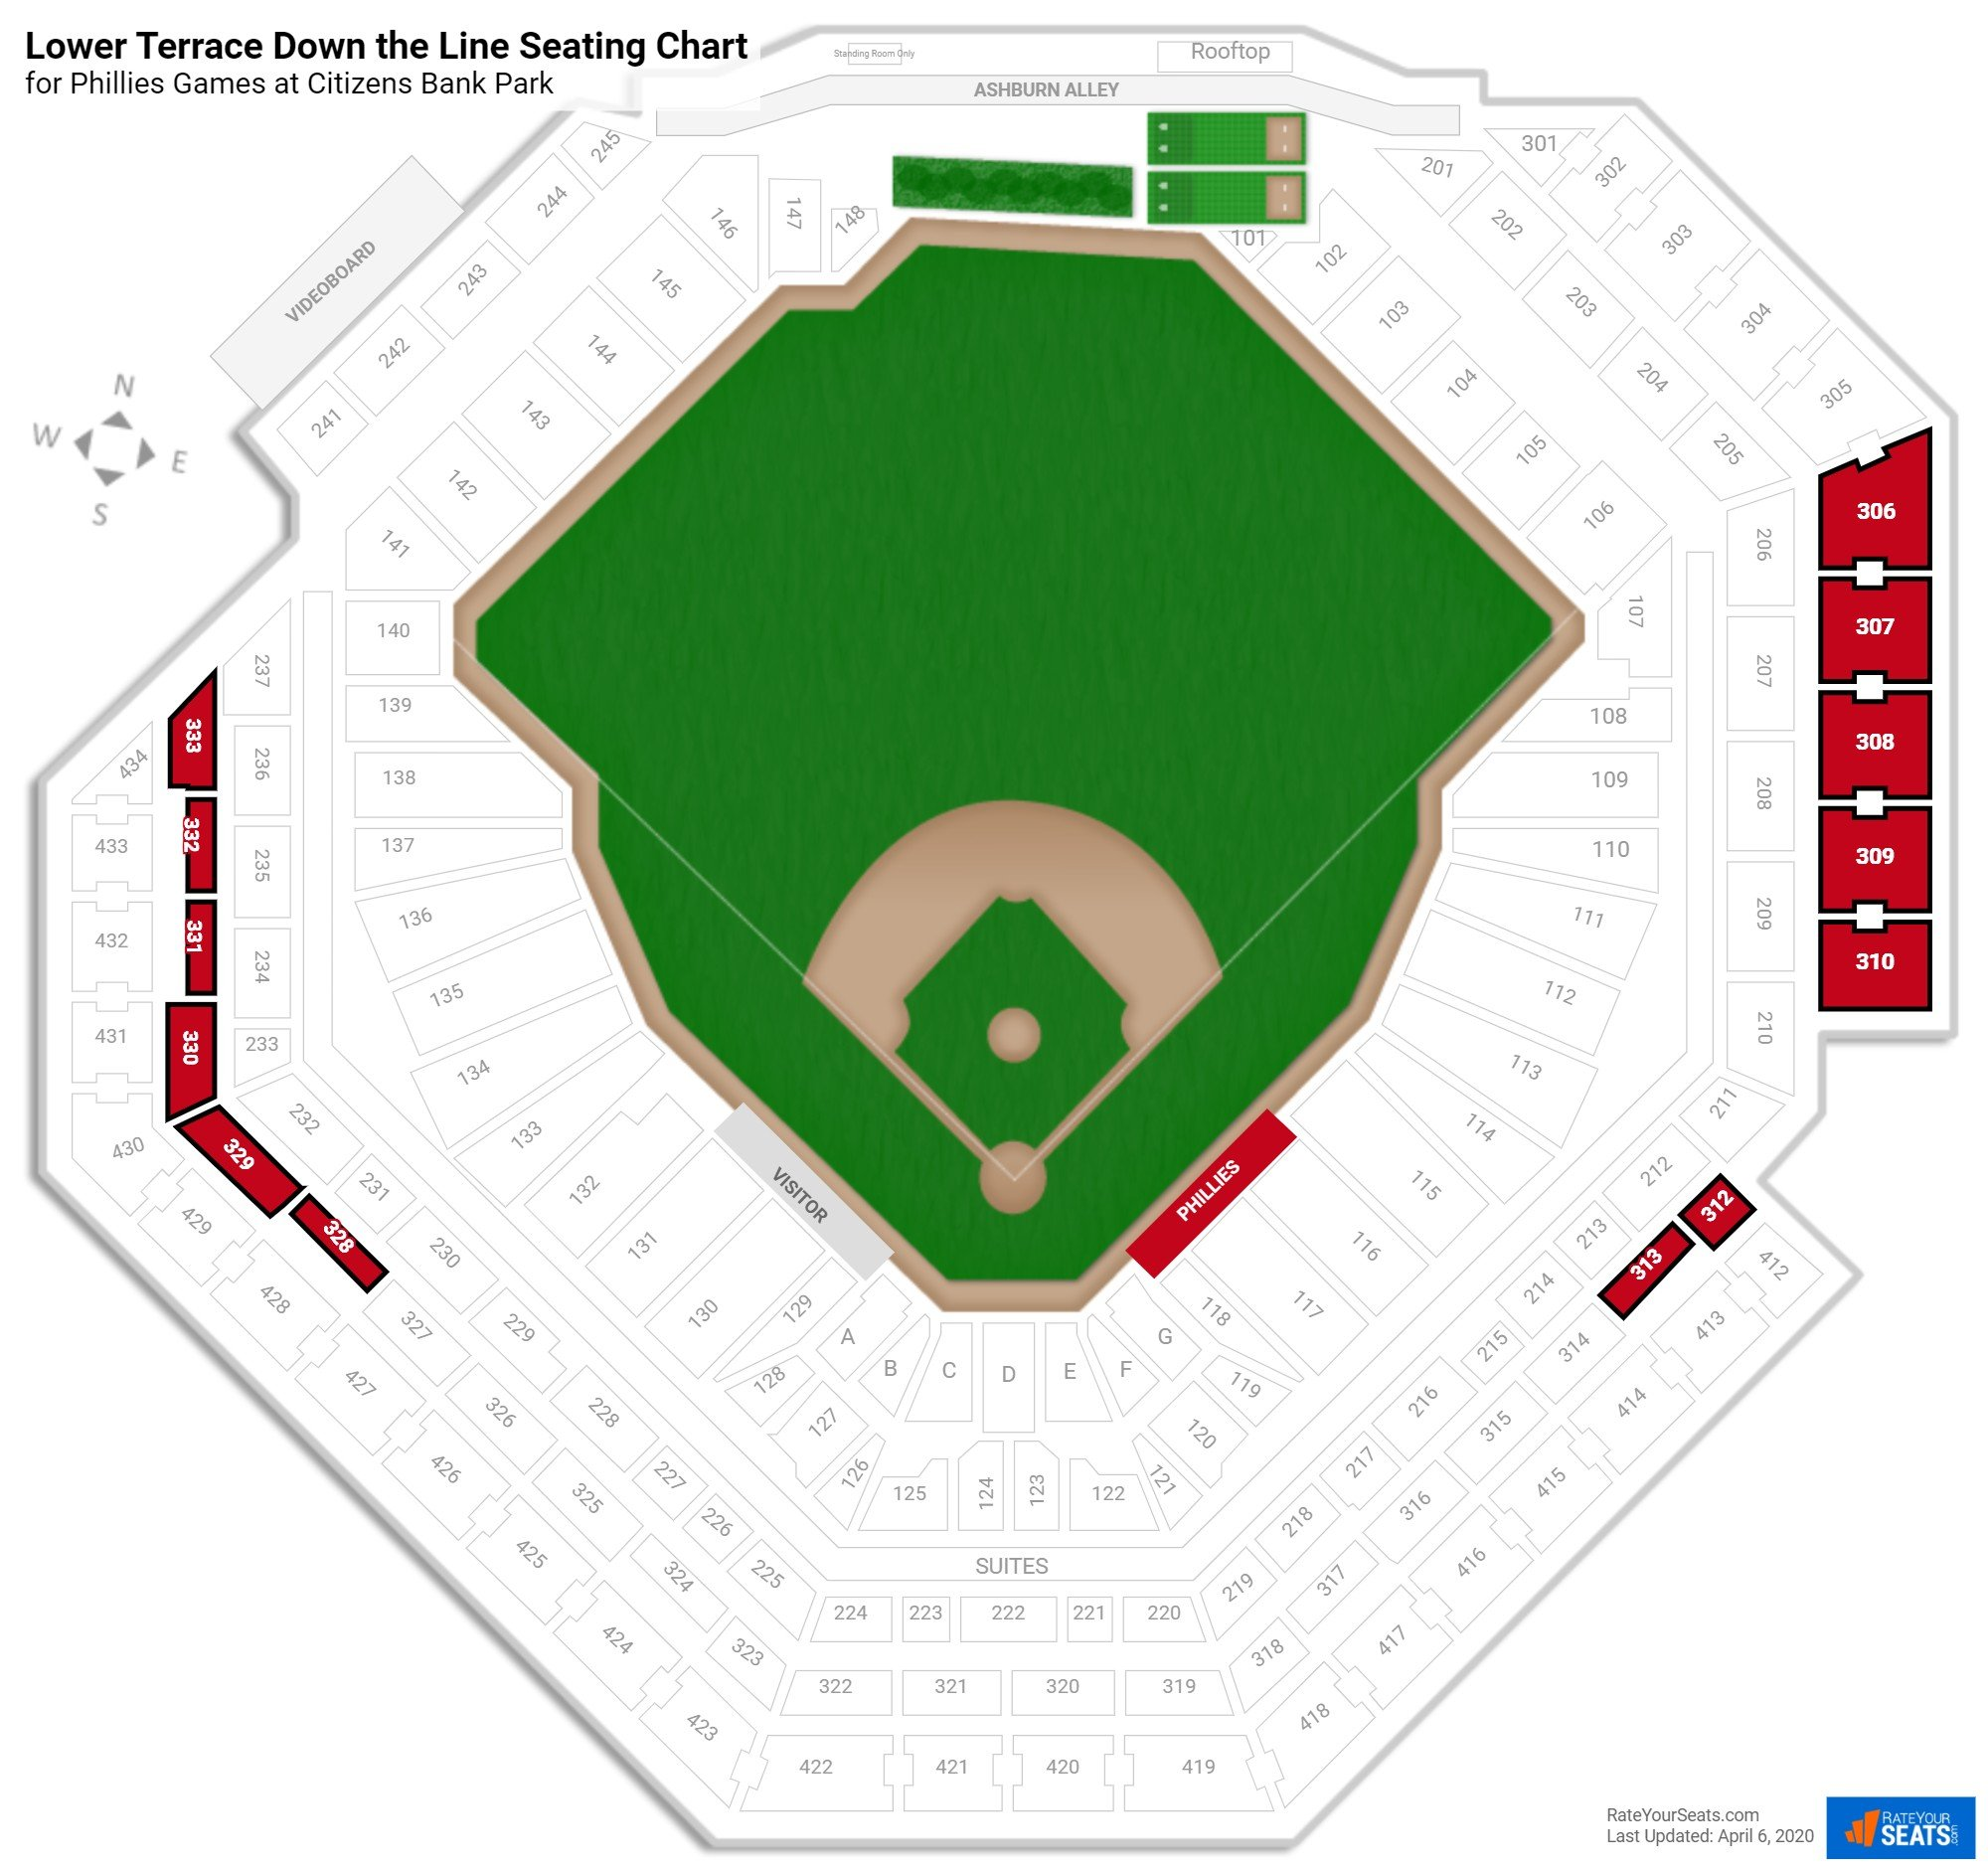 Citizens Bank Park Lower Terrace Down the Line seating chart